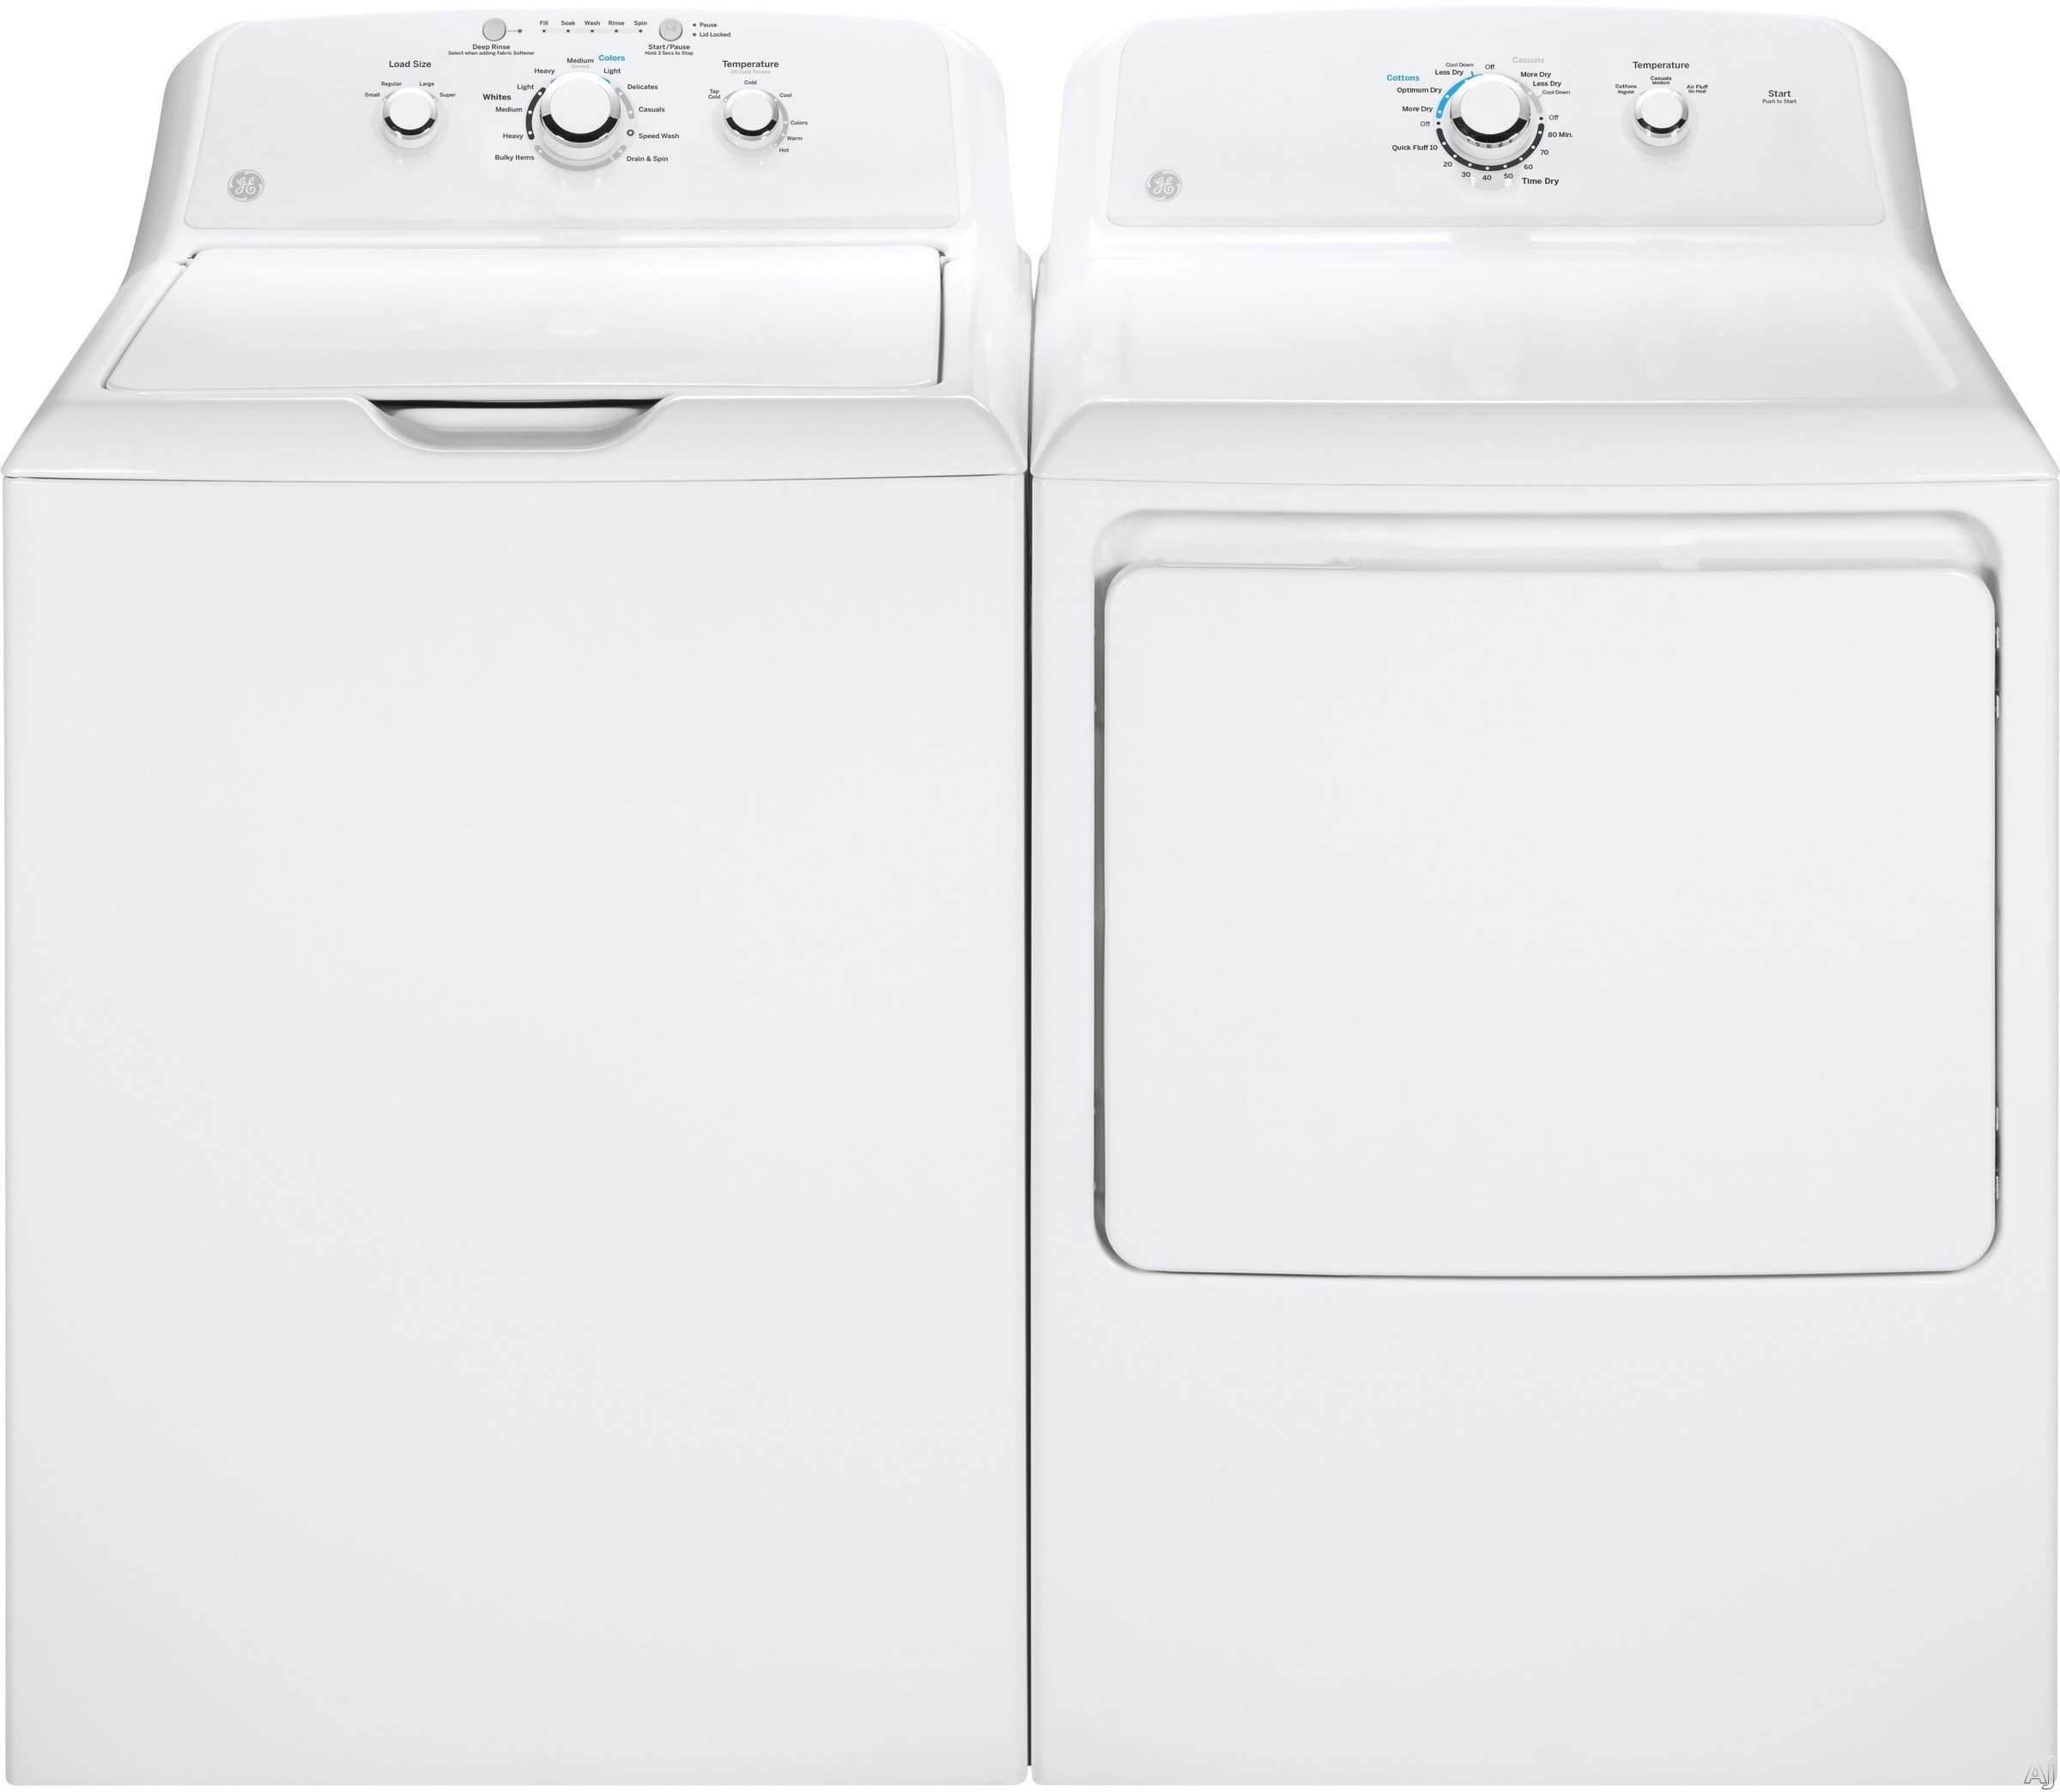 B C Washer ~ Ge gewadrew side by washer dryer set with top